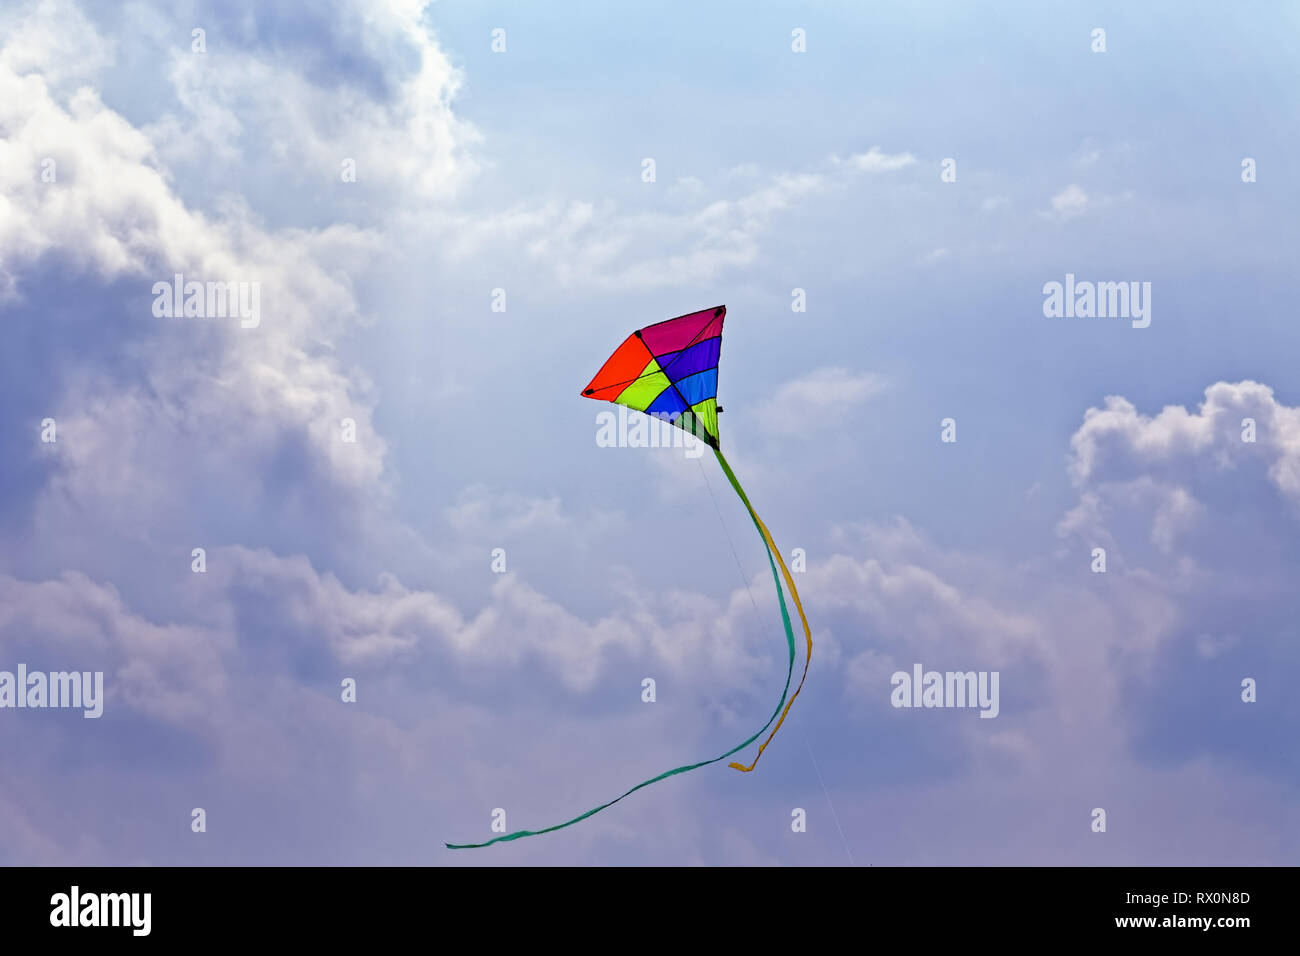 42,518.02980 kite with long curved tail, multi-color multi colored red yellow green blue purple triangular kite flying in sunny cloudy blue sky clouds - Stock Image